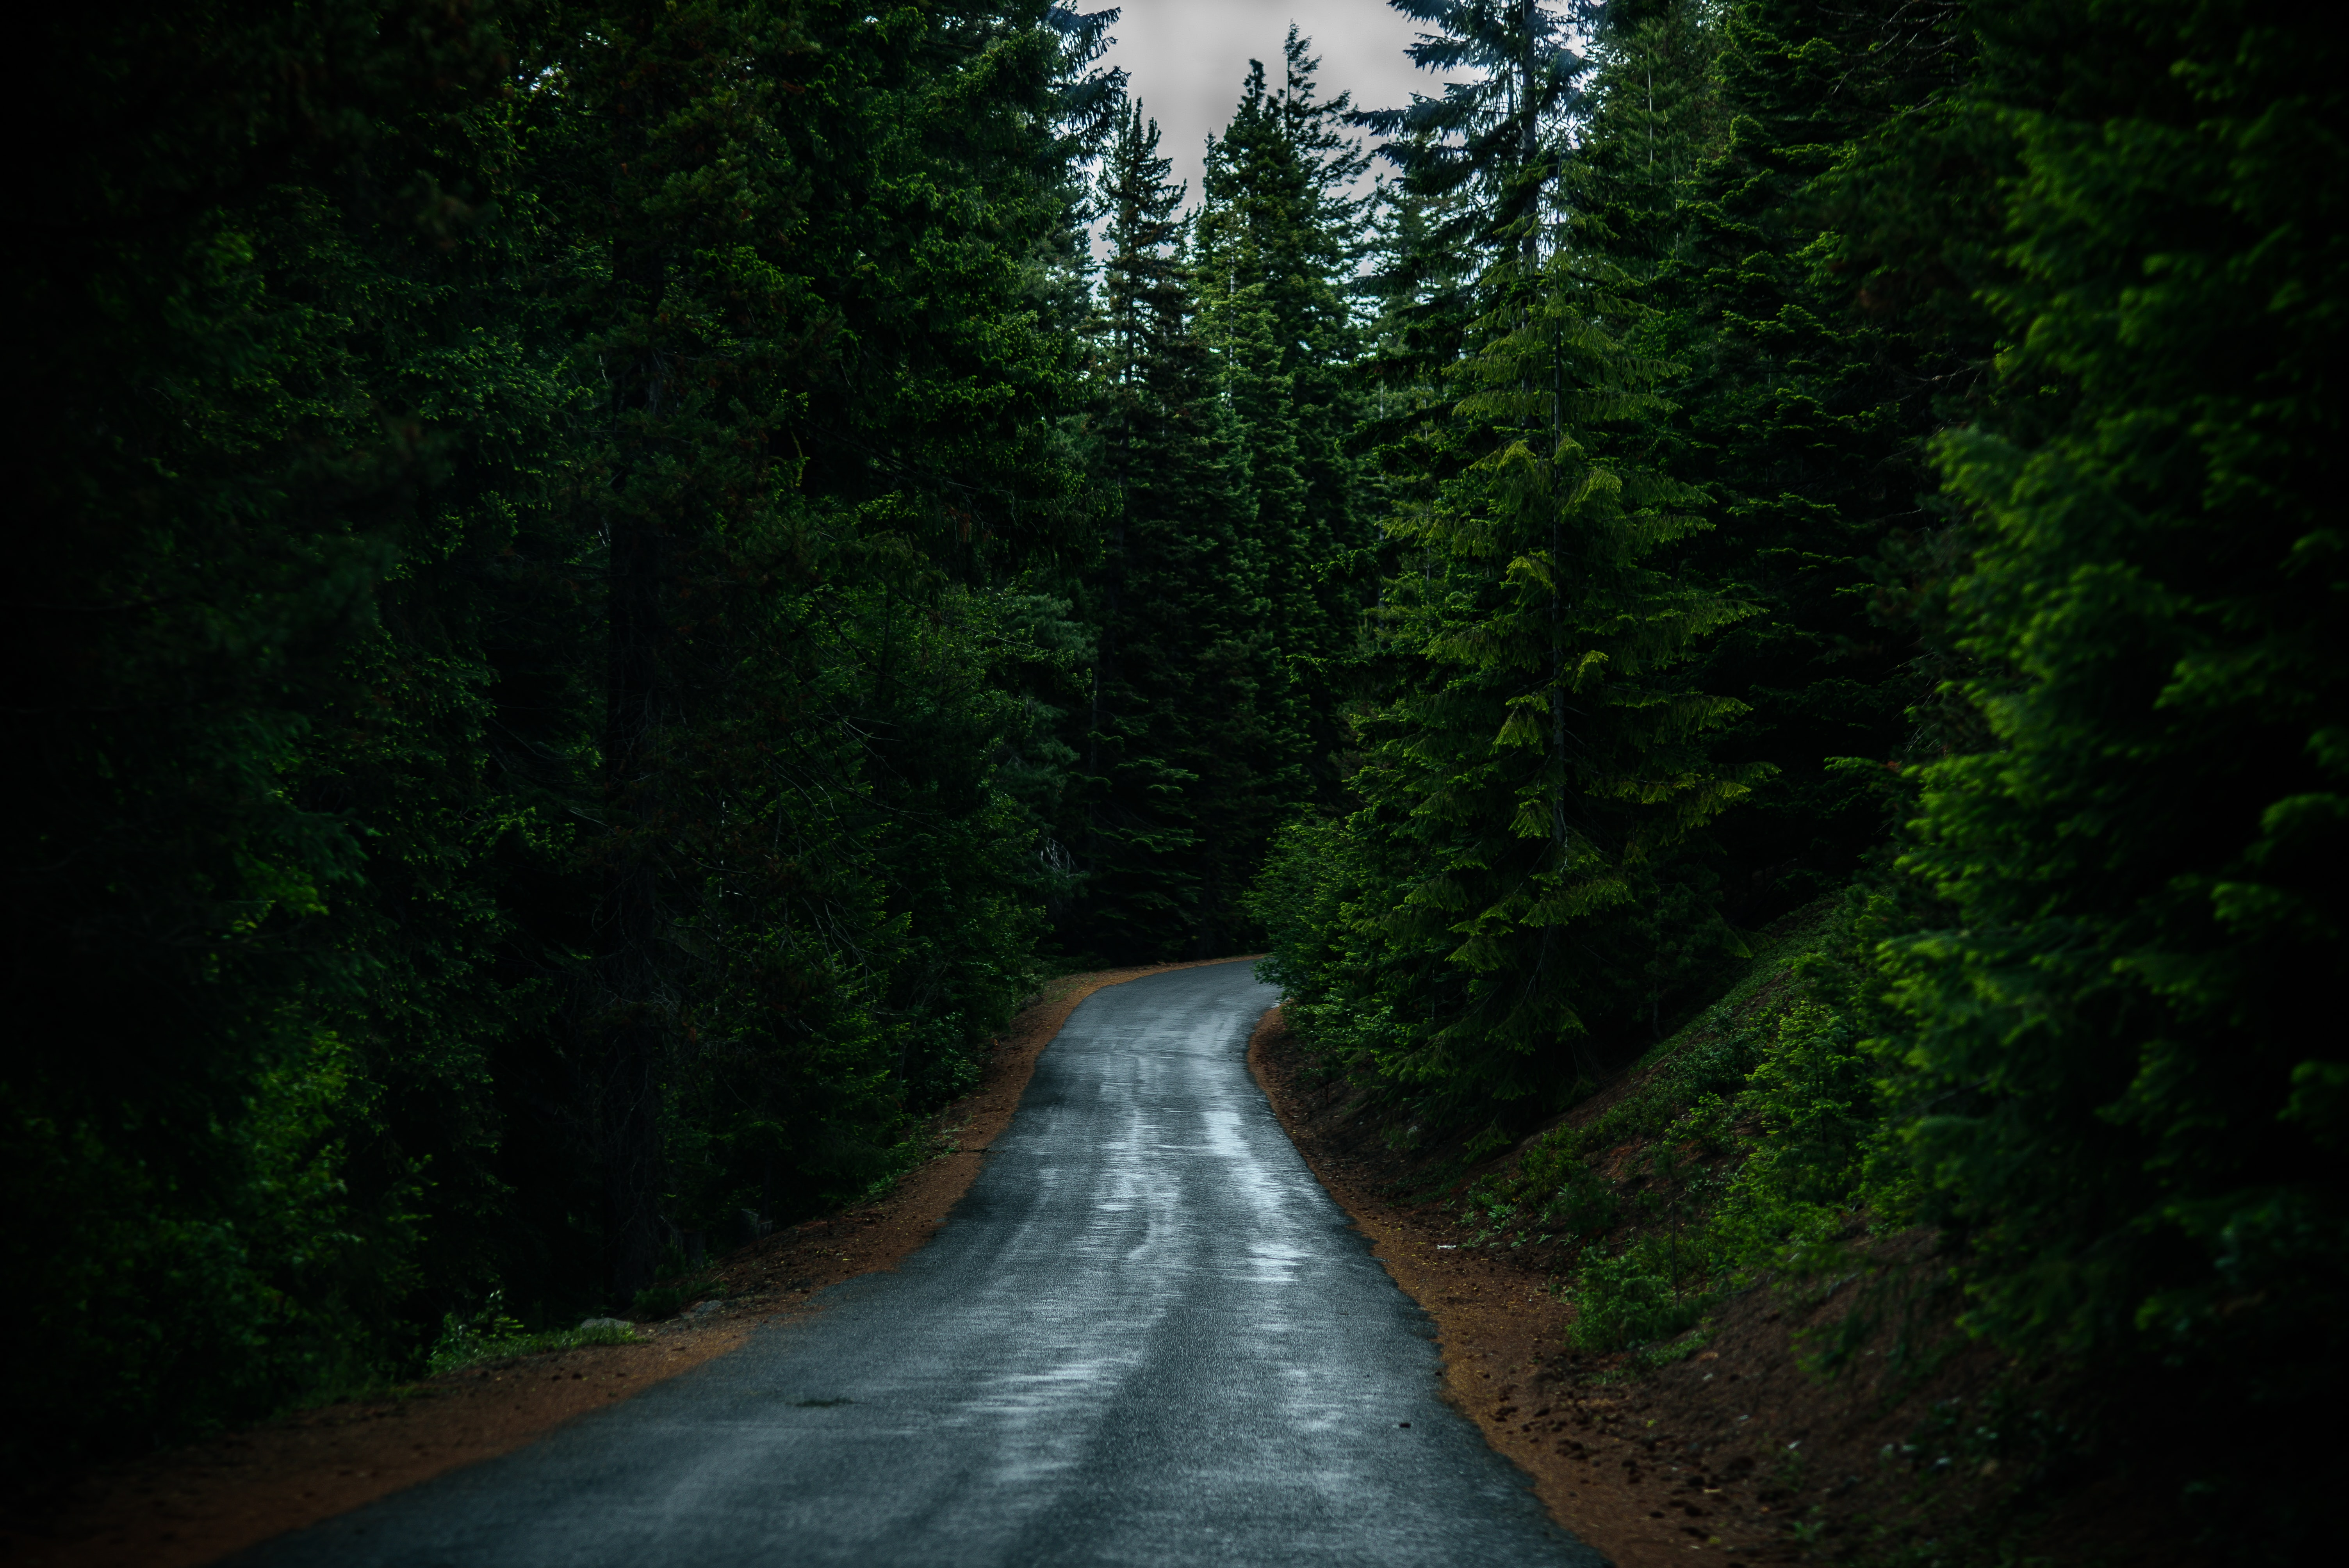 A wet asphalt road lined with green conifers in Crescent